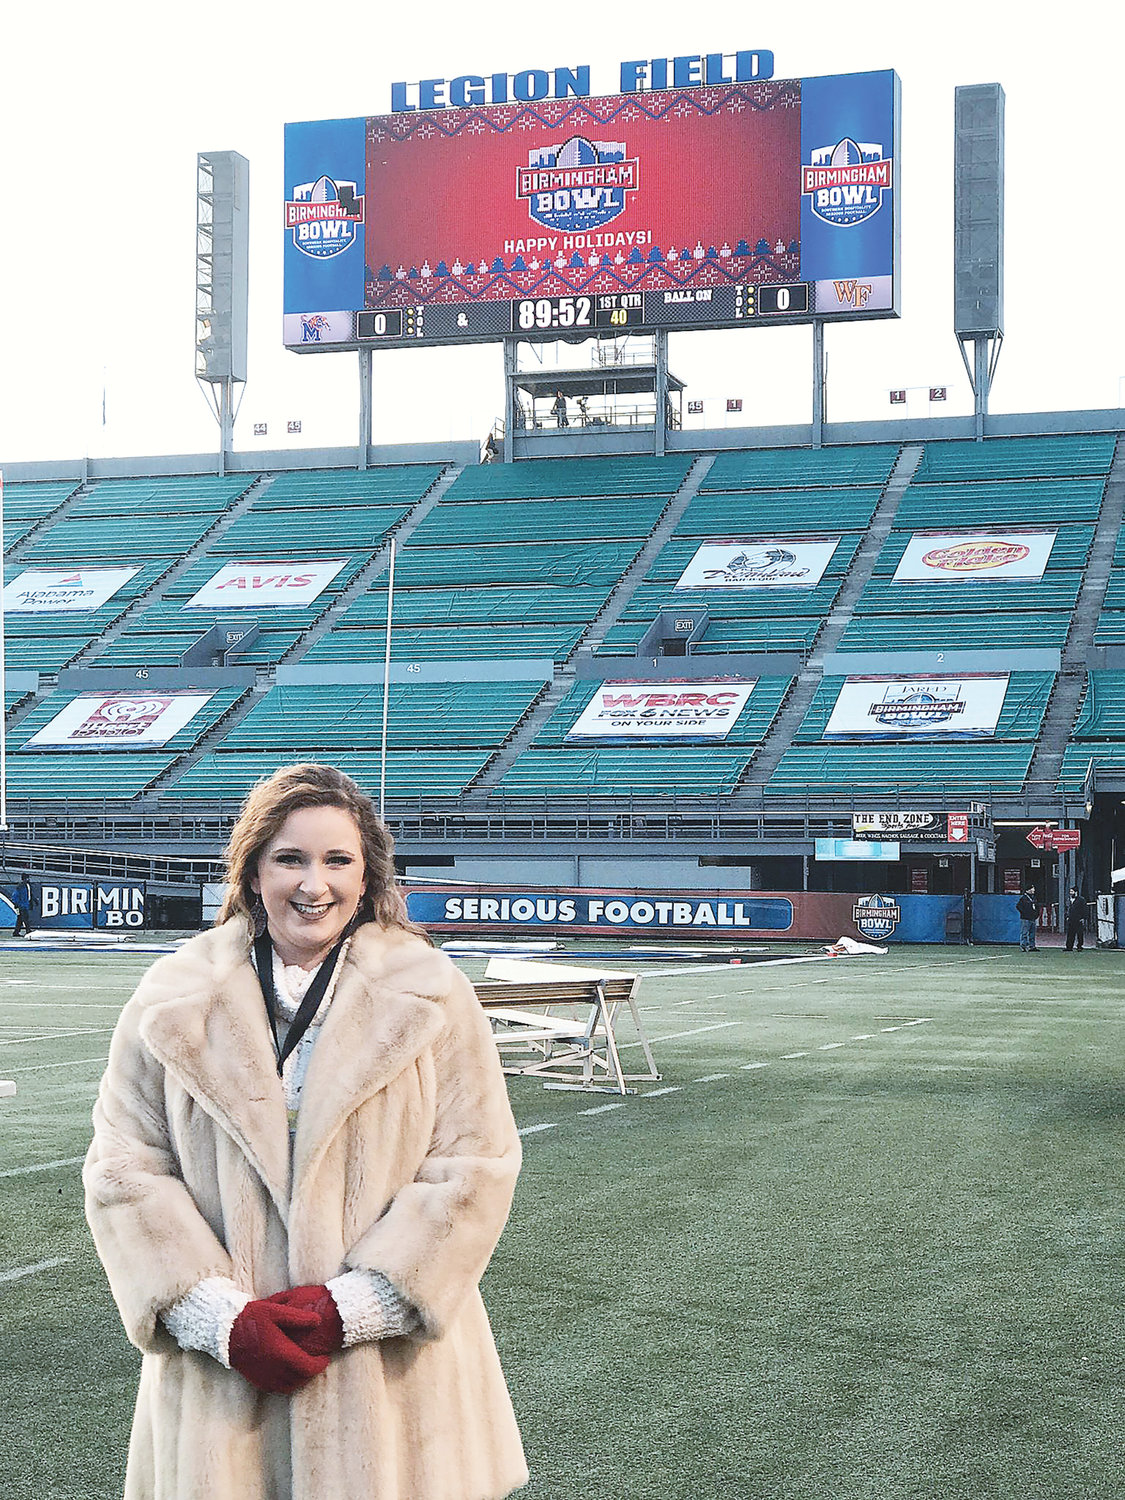 Allie Sickles takes a moment for a photo op at Legion Field prior to performing the national anthem at the Birmingham Bowl.